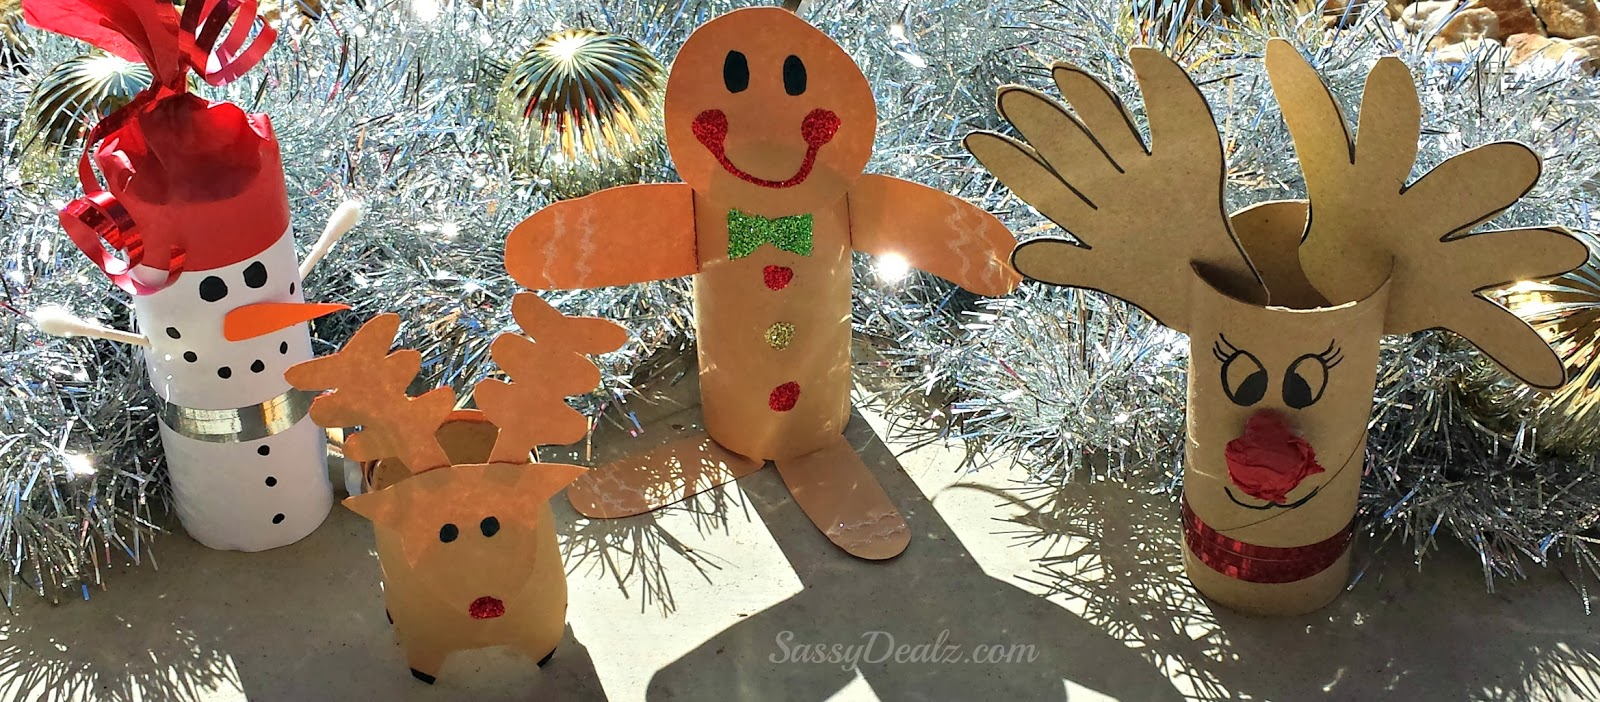 Diy christmas toilet paper roll craft ideas for kids crafty morning christmas toilet paper roll crafts jeuxipadfo Choice Image